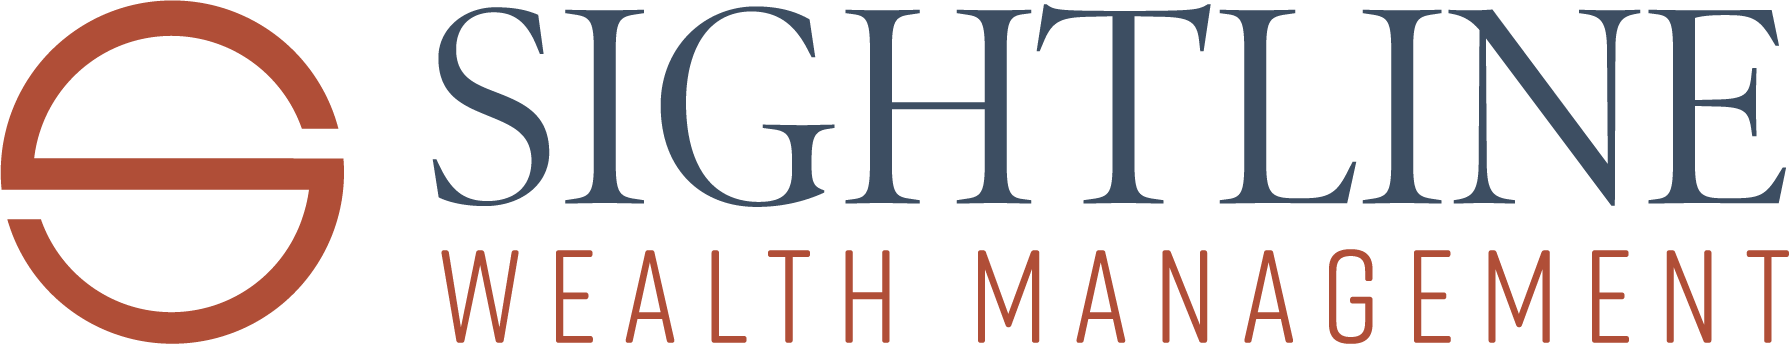 Sightline Wealth Management